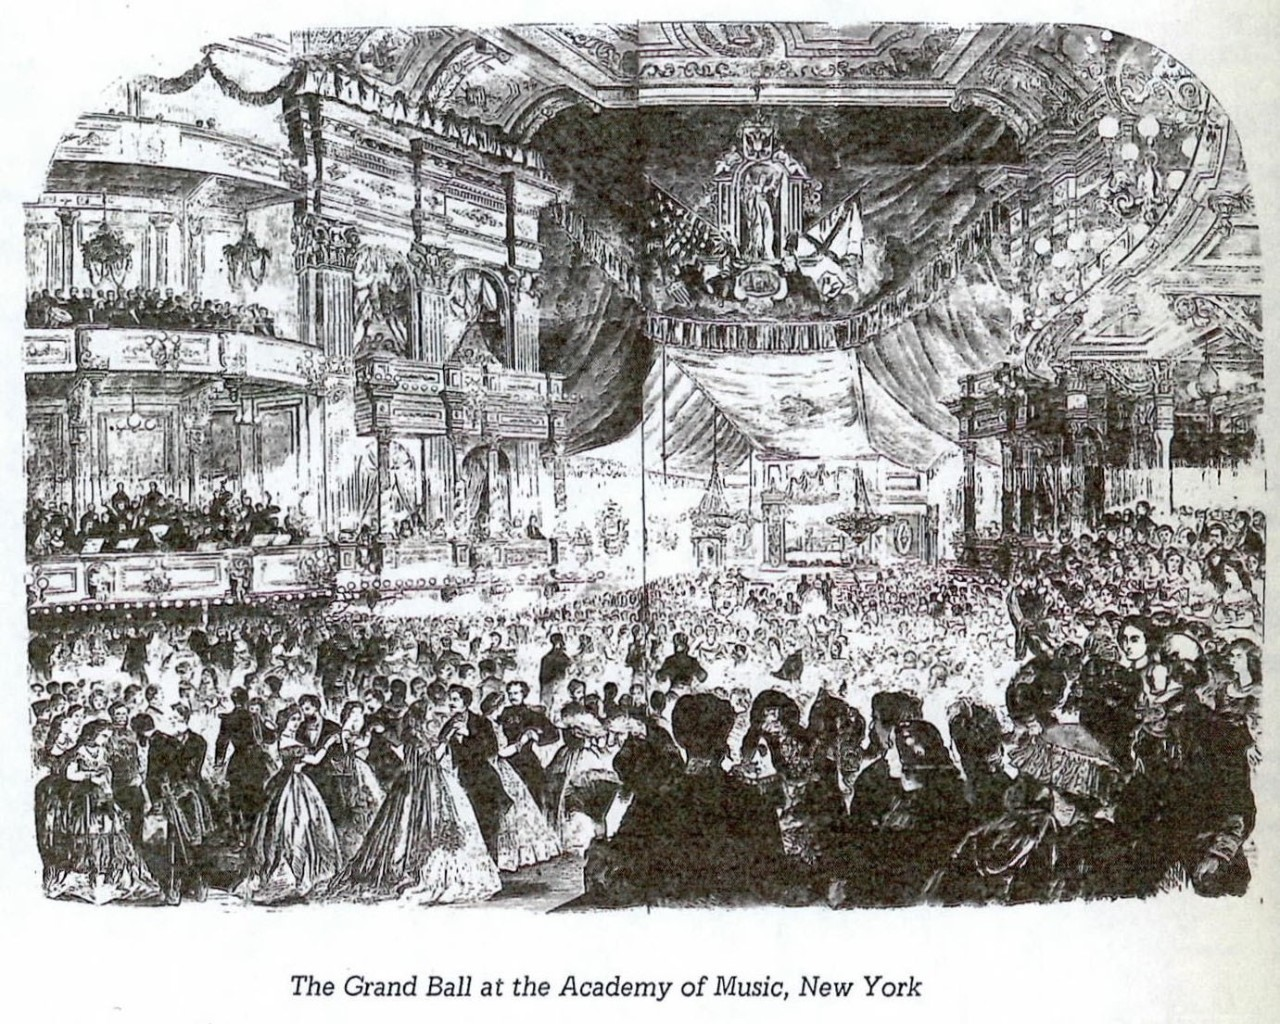 The Grand Ball at the Academy of Music, New York